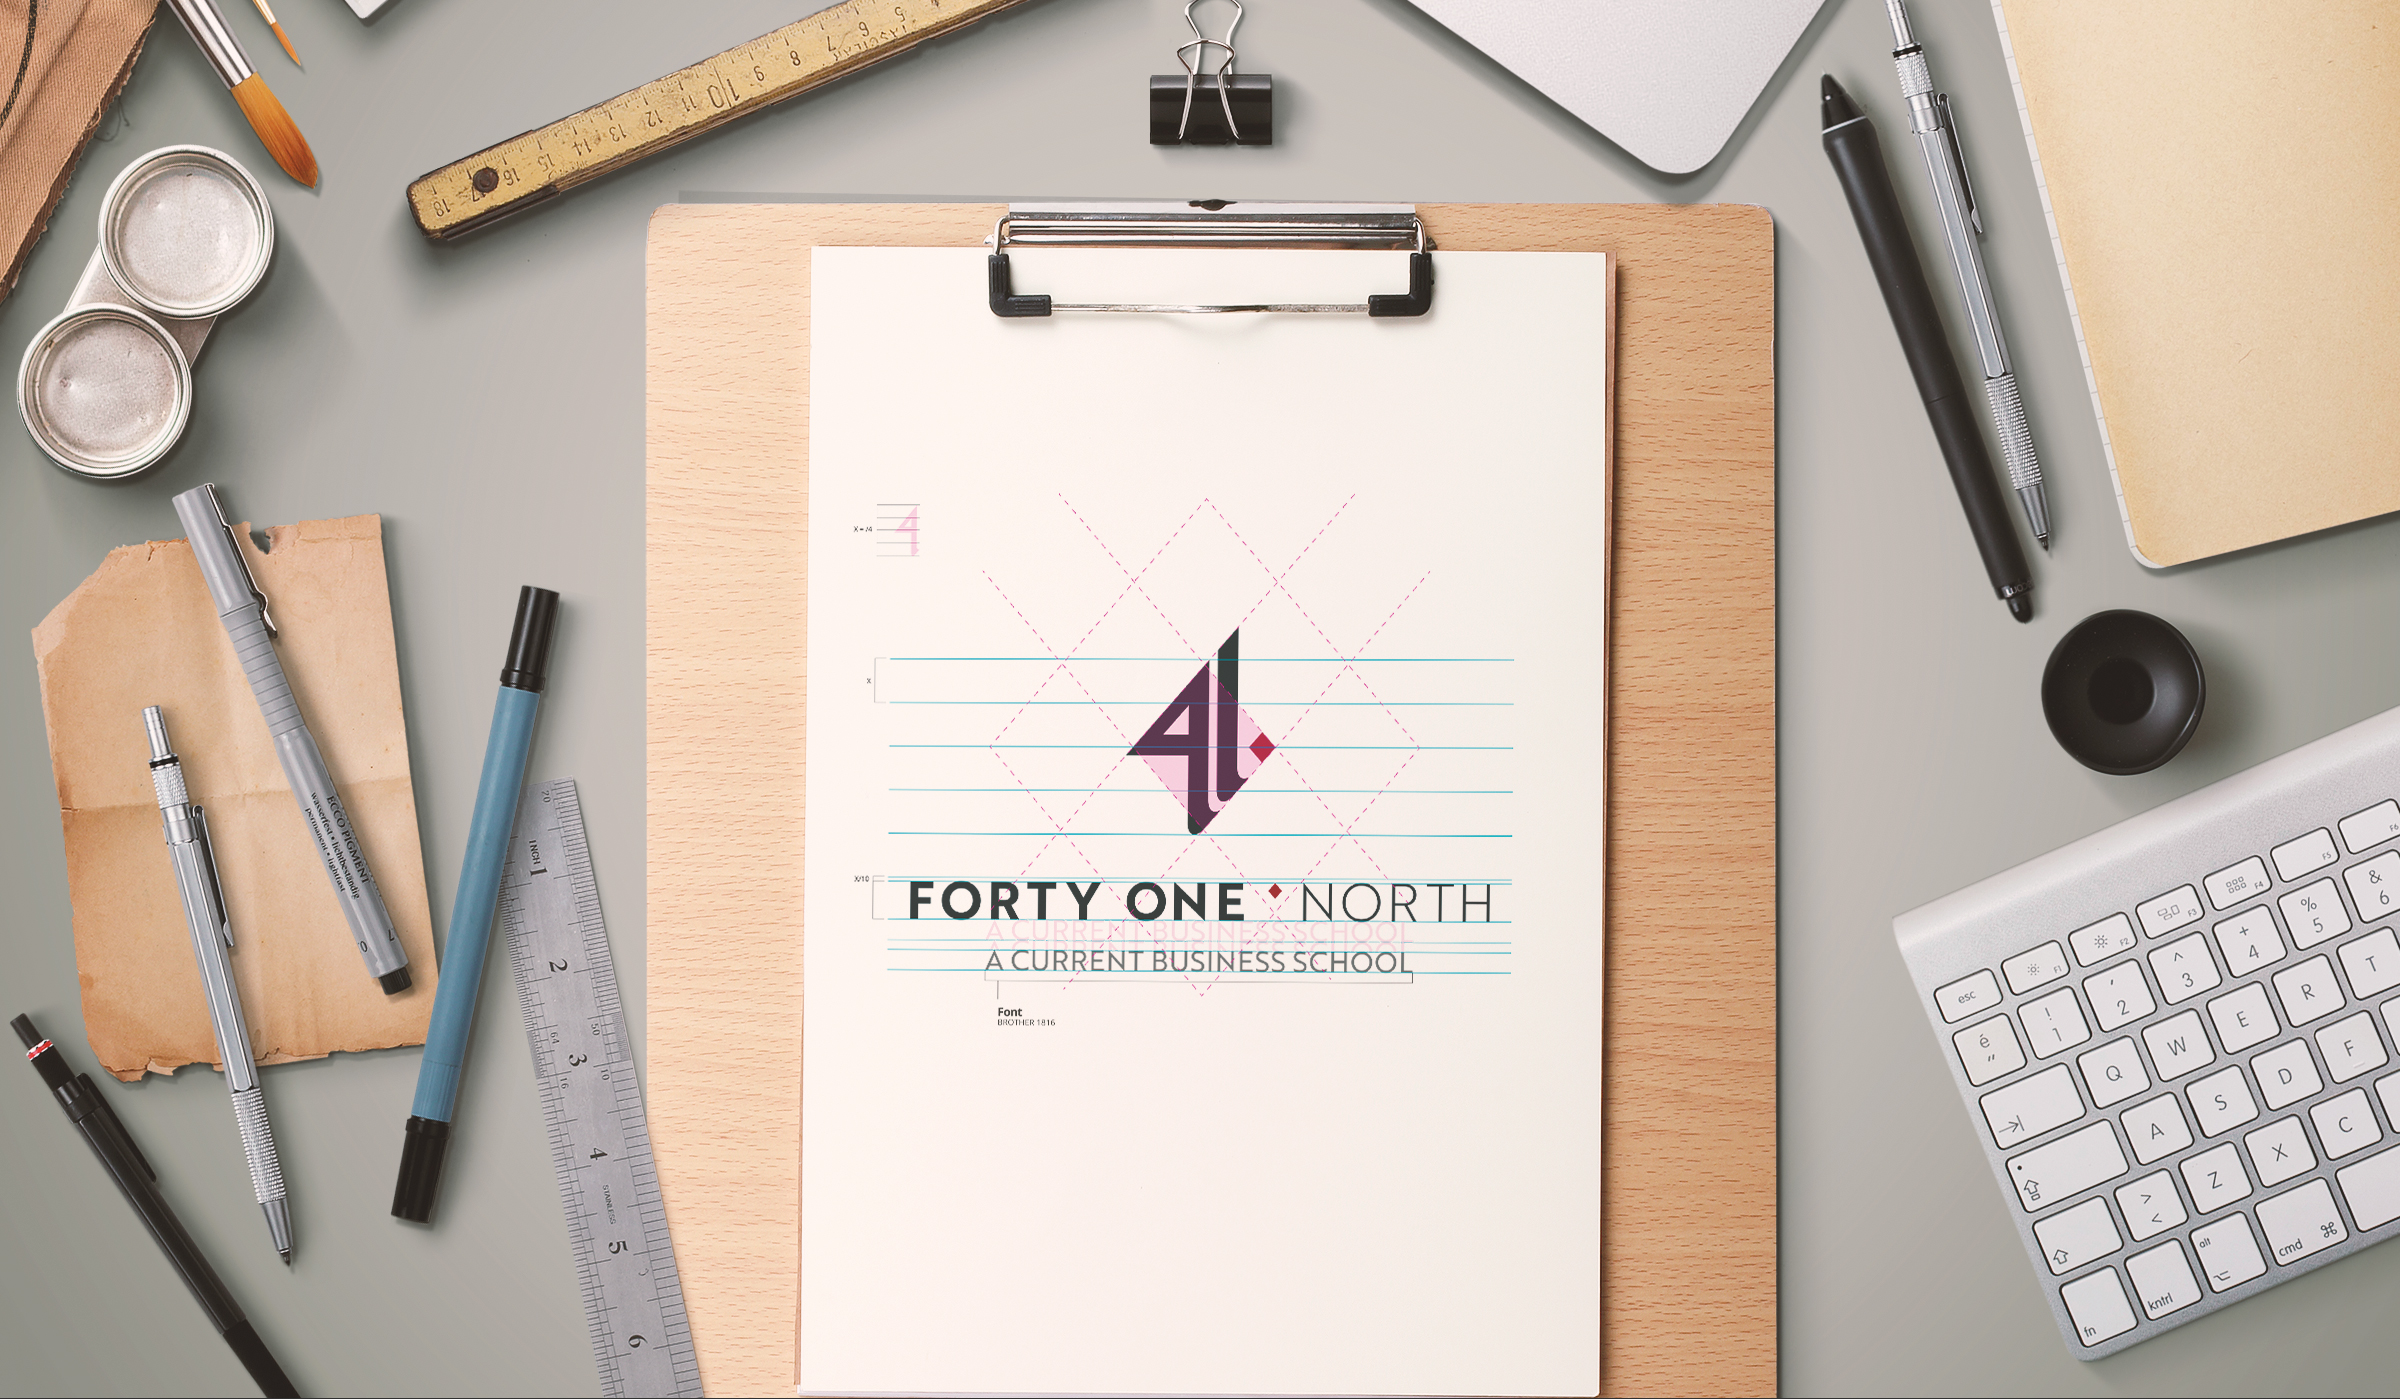 41_North_sketch-mockup_05